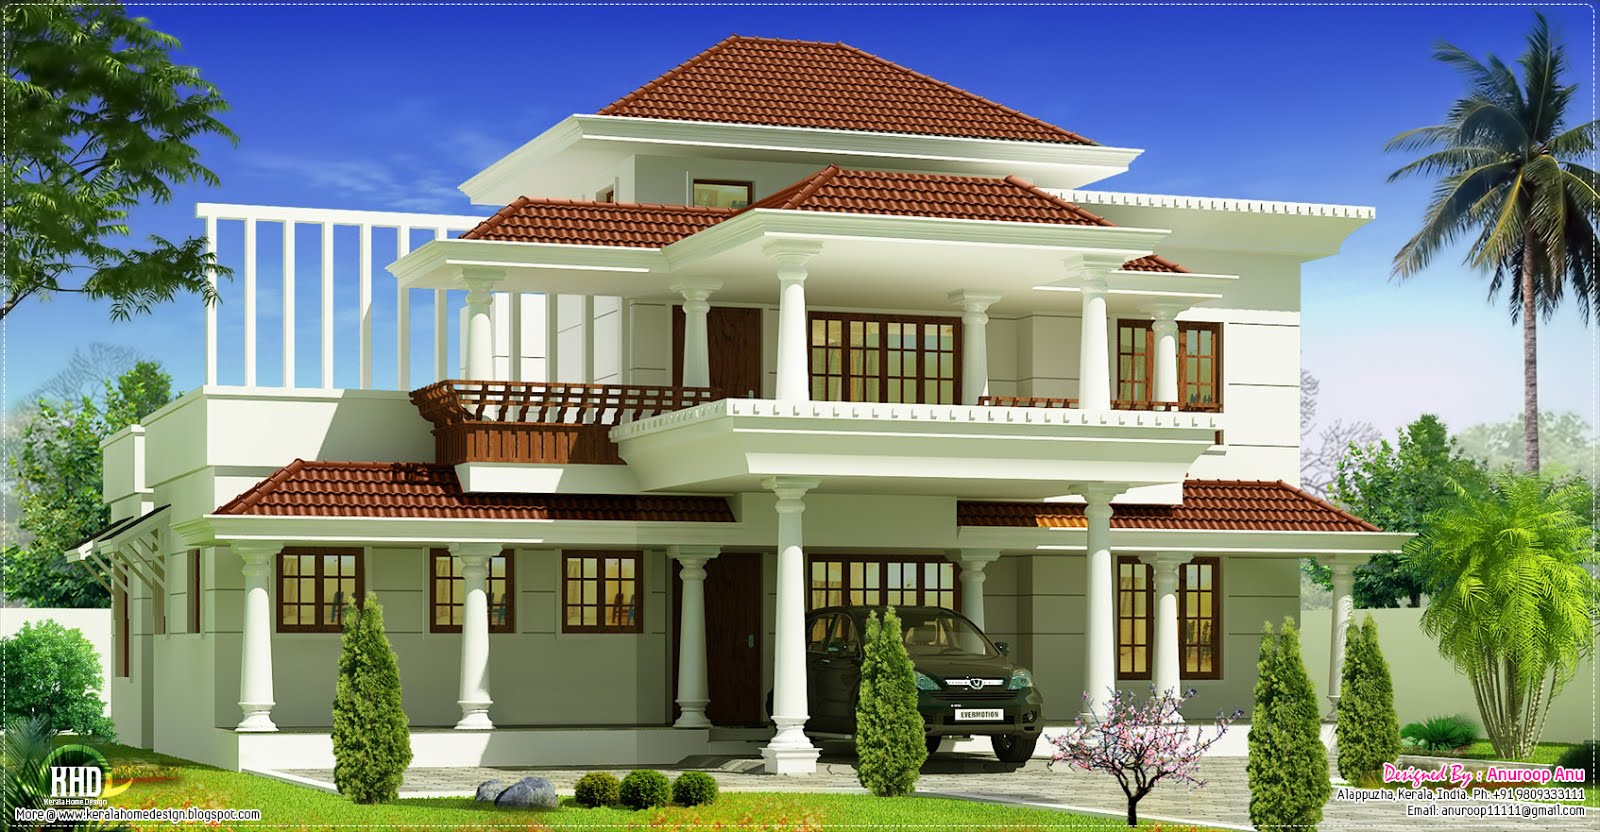 Kerala house models houses plans designs for Kerala house design plans